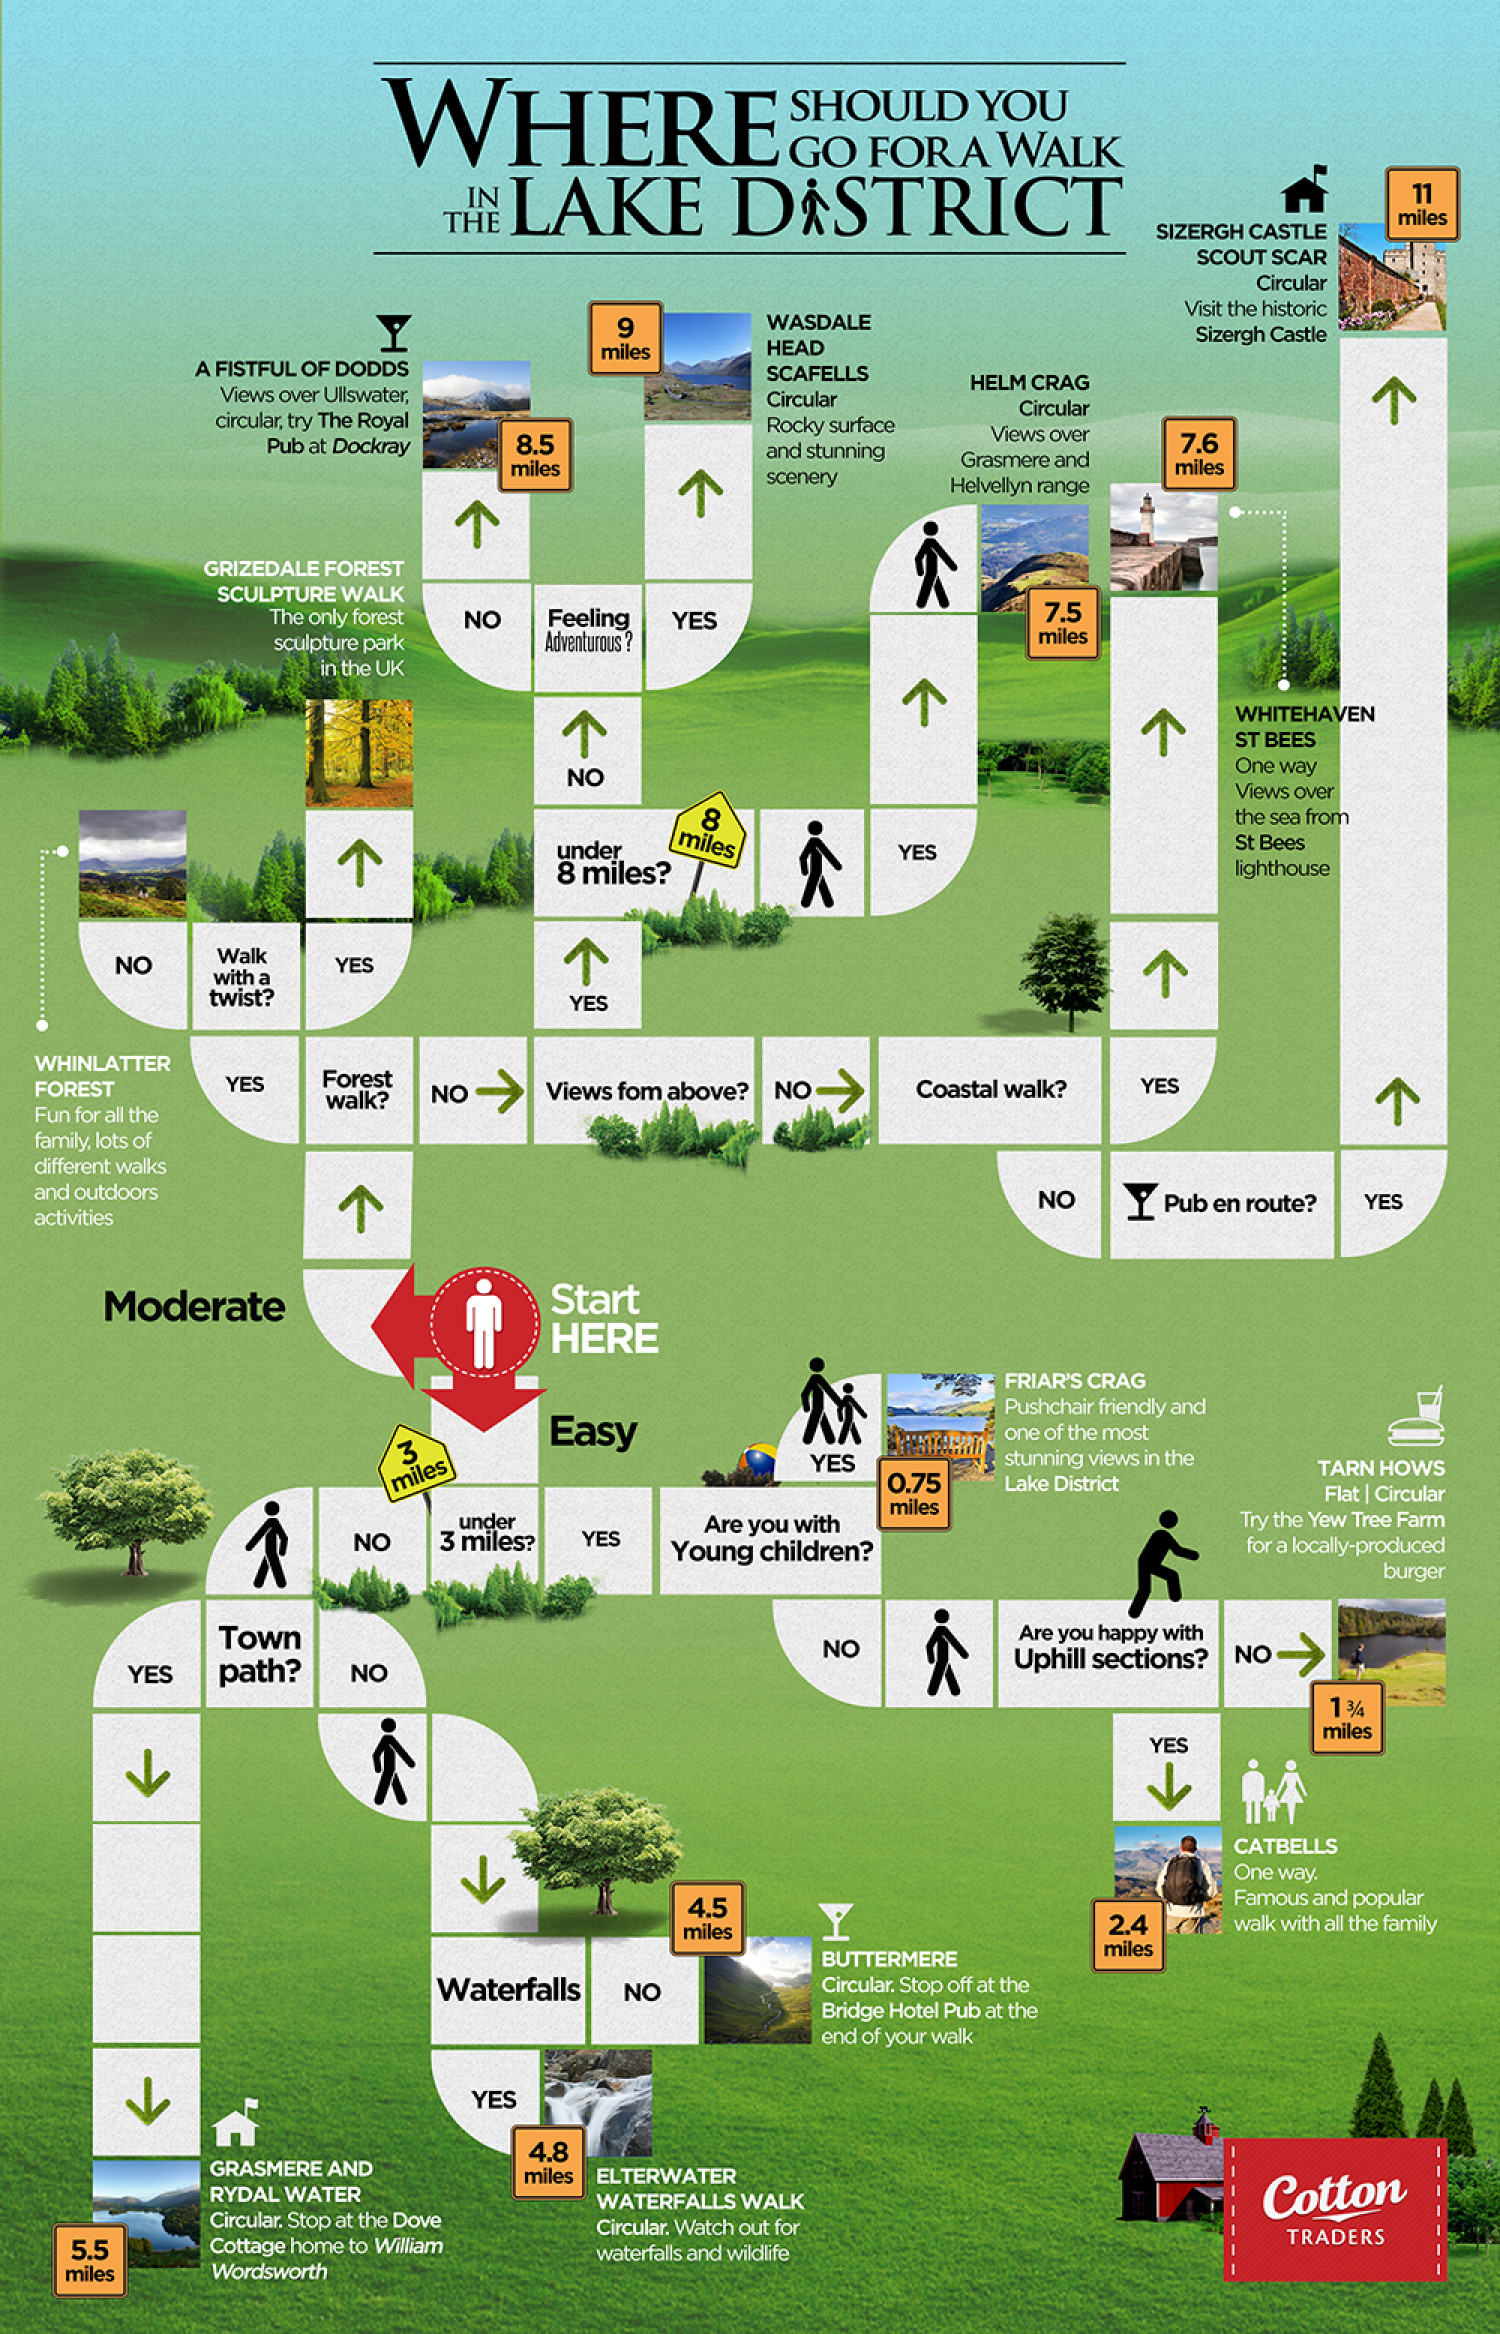 Where Should You Walk In The Lake District? Infographic